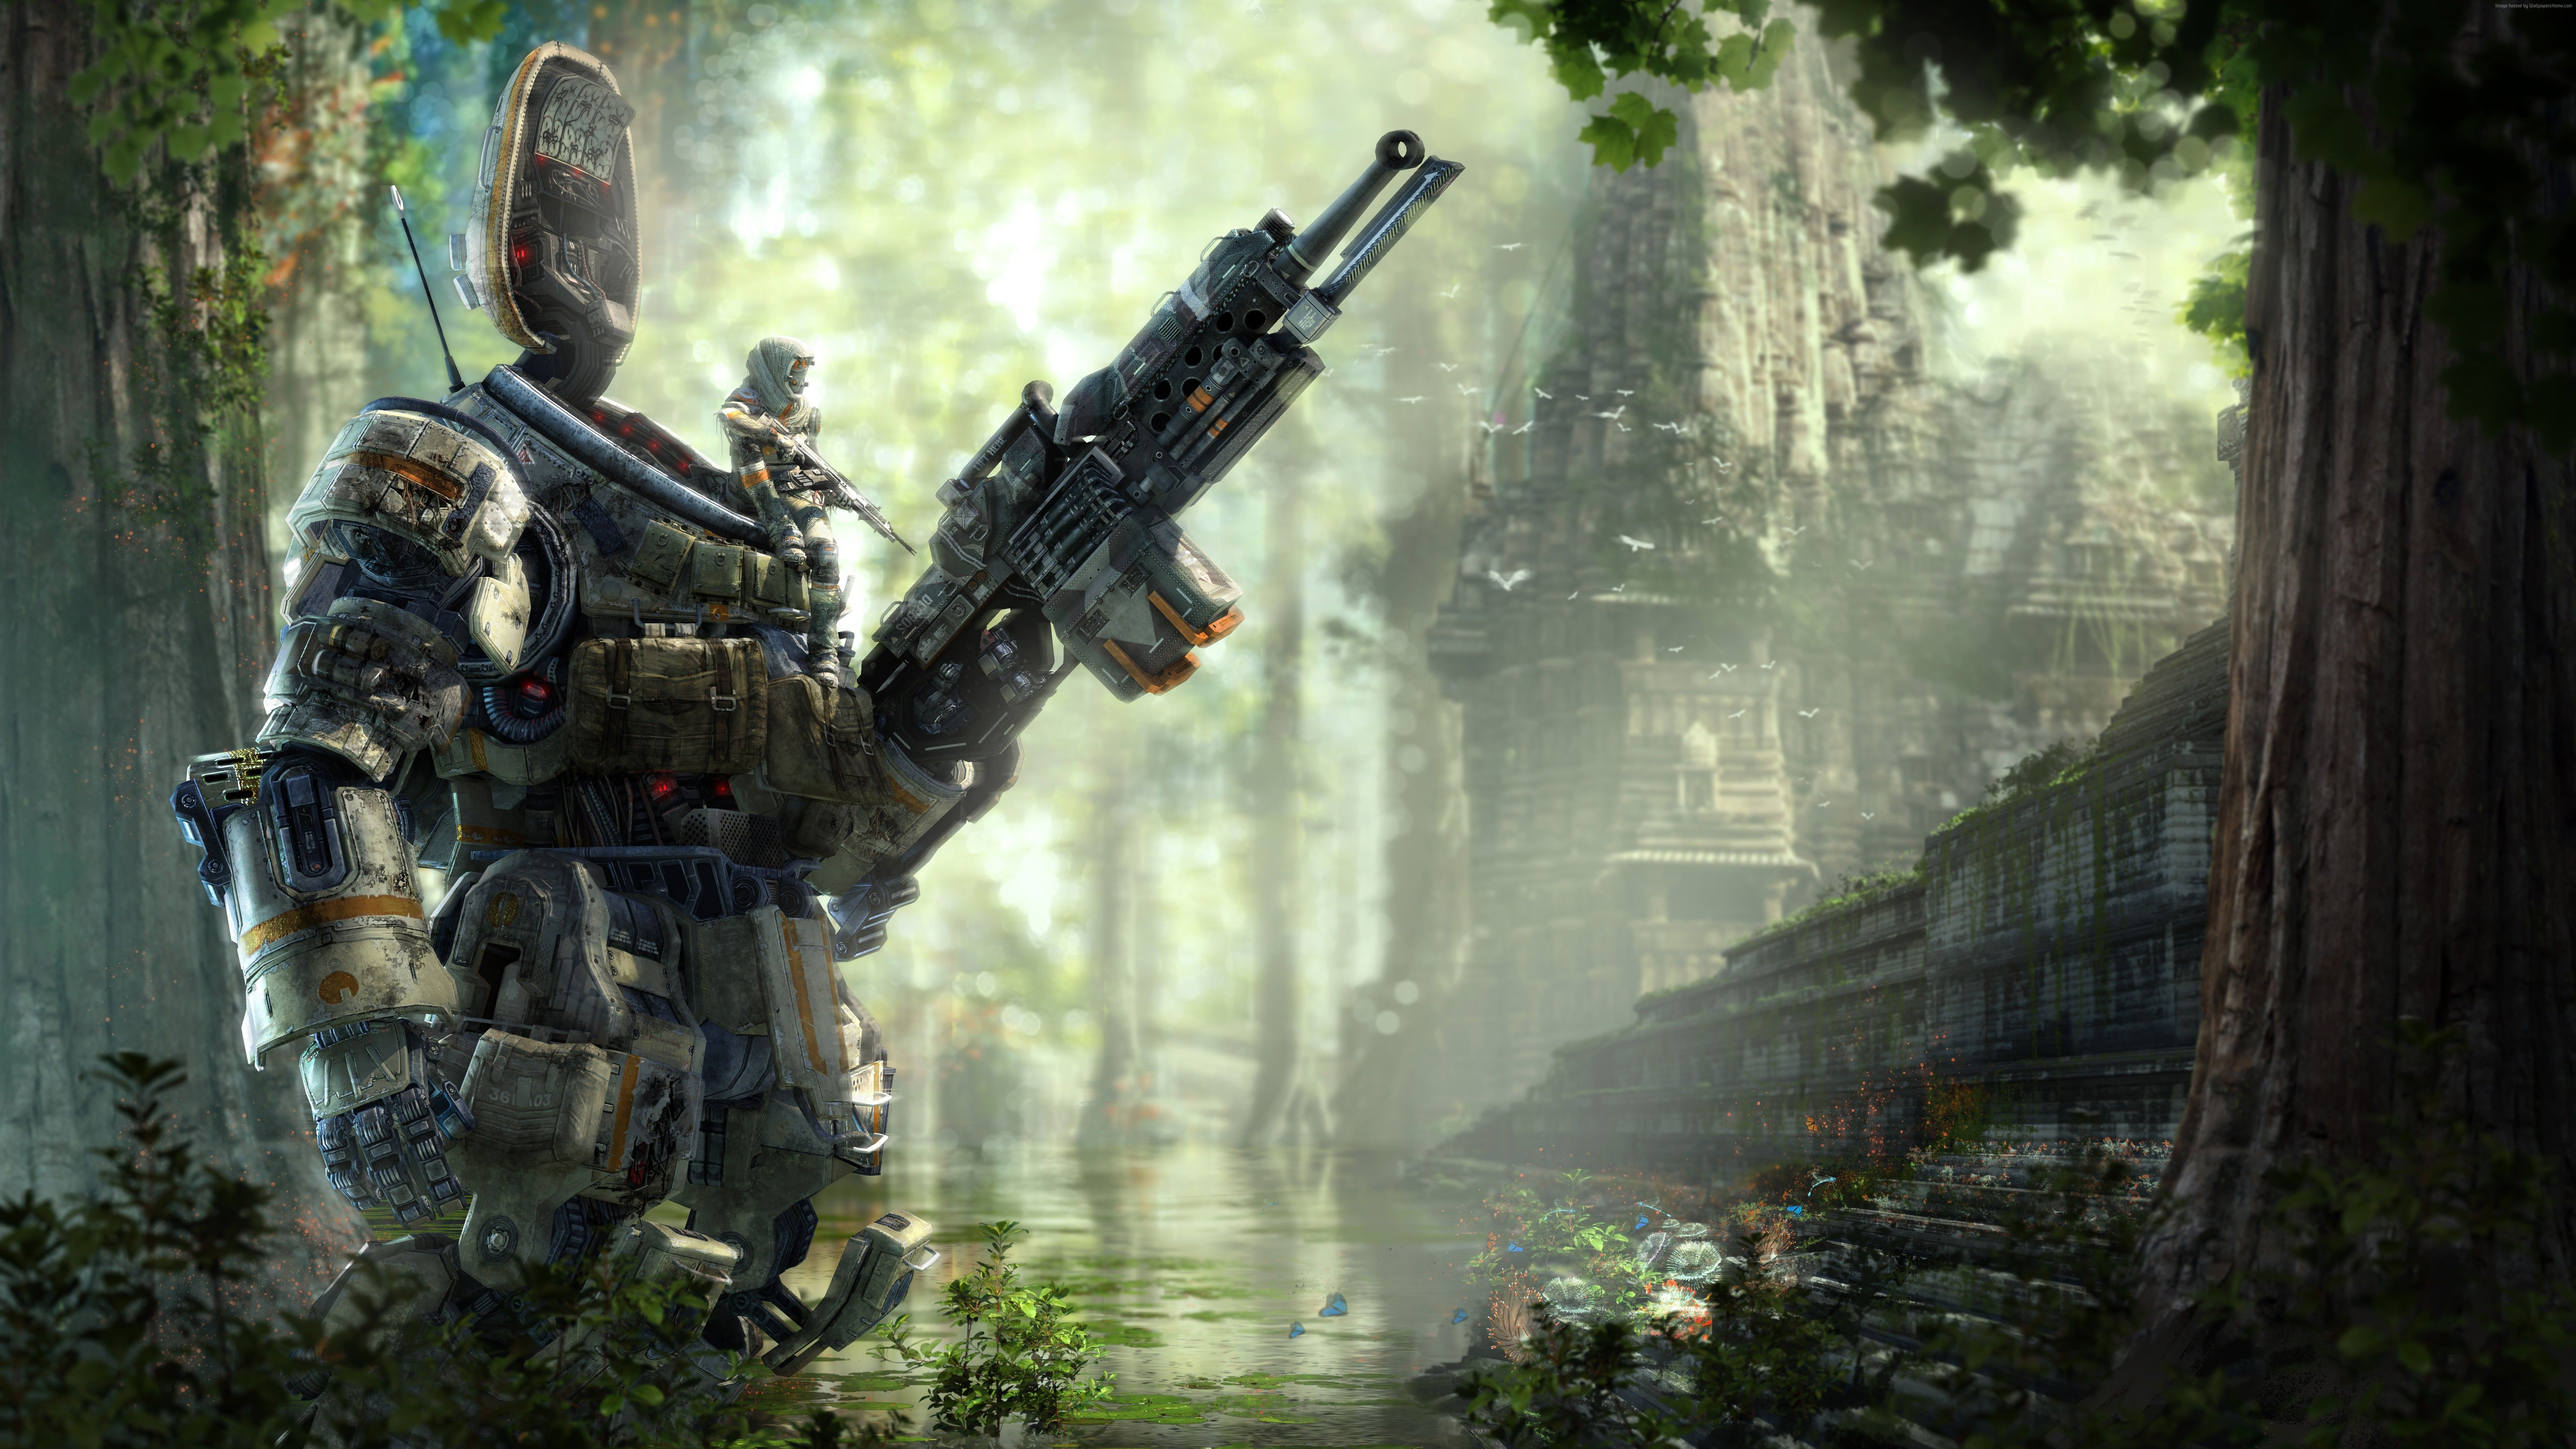 Titanfall 2 Ronin Wallpapers High Quality Resolution On Wallpaper 1080p Hd In 2020 Titanfall Titanfall Game Xbox One